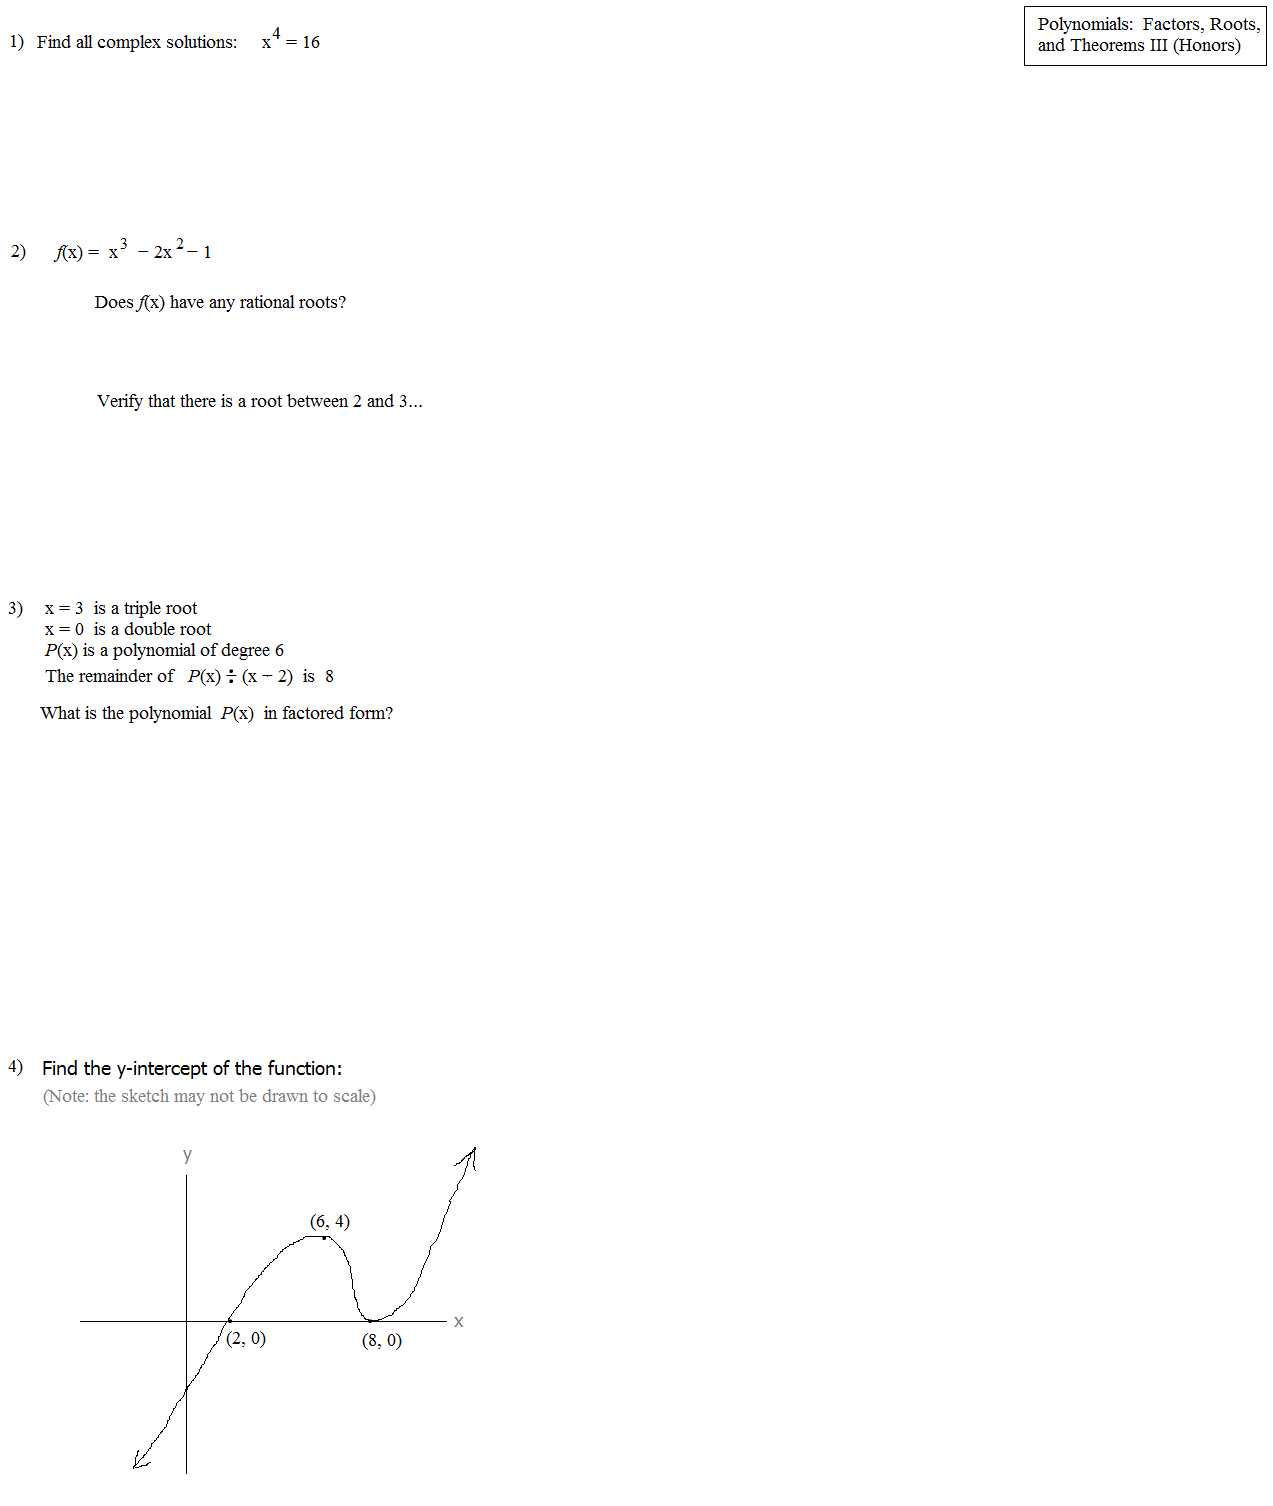 Math plane polynomials iii factors roots theorems honors polynomials test page 1 ccuart Image collections